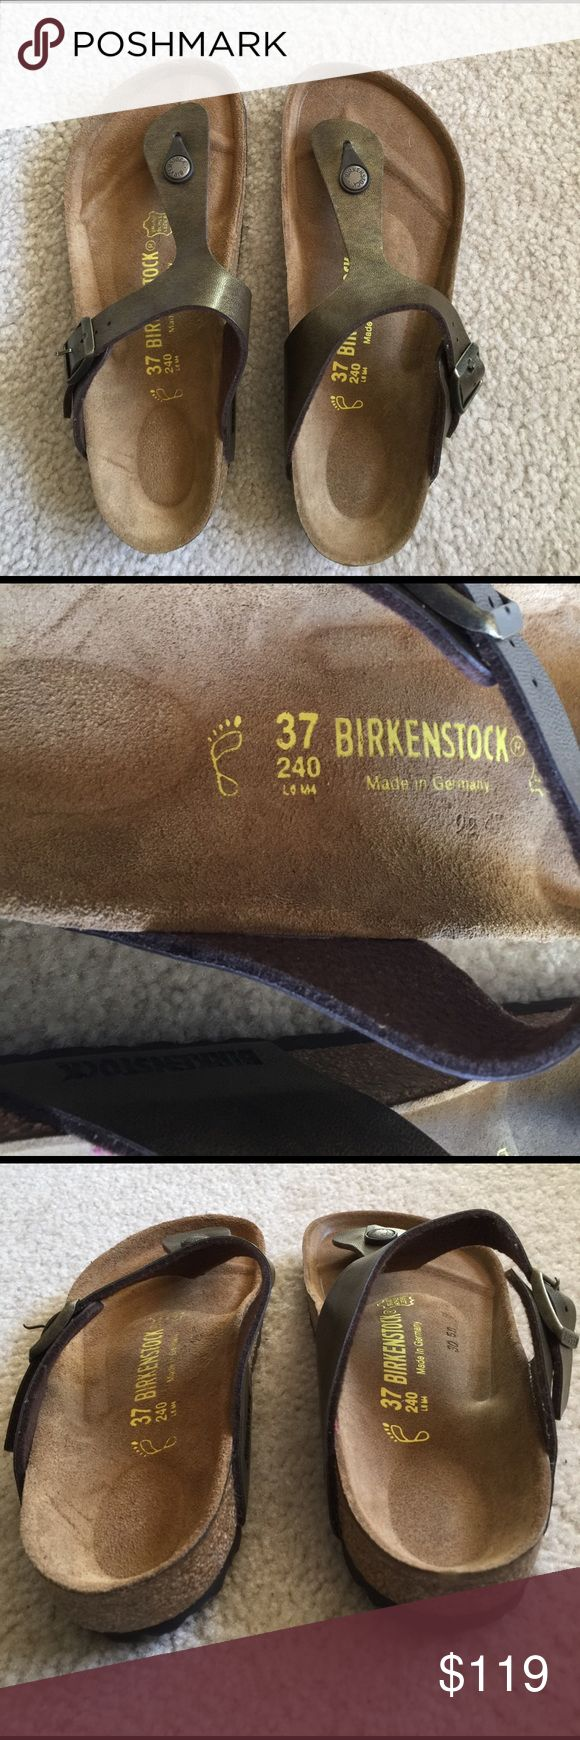 Birkenstock sandal Birkenstock sandals new without box. Euro size 37 but in us sizing that is a 6. Kind of a bronze color, gizeh style Birkenstock Shoes Sandals